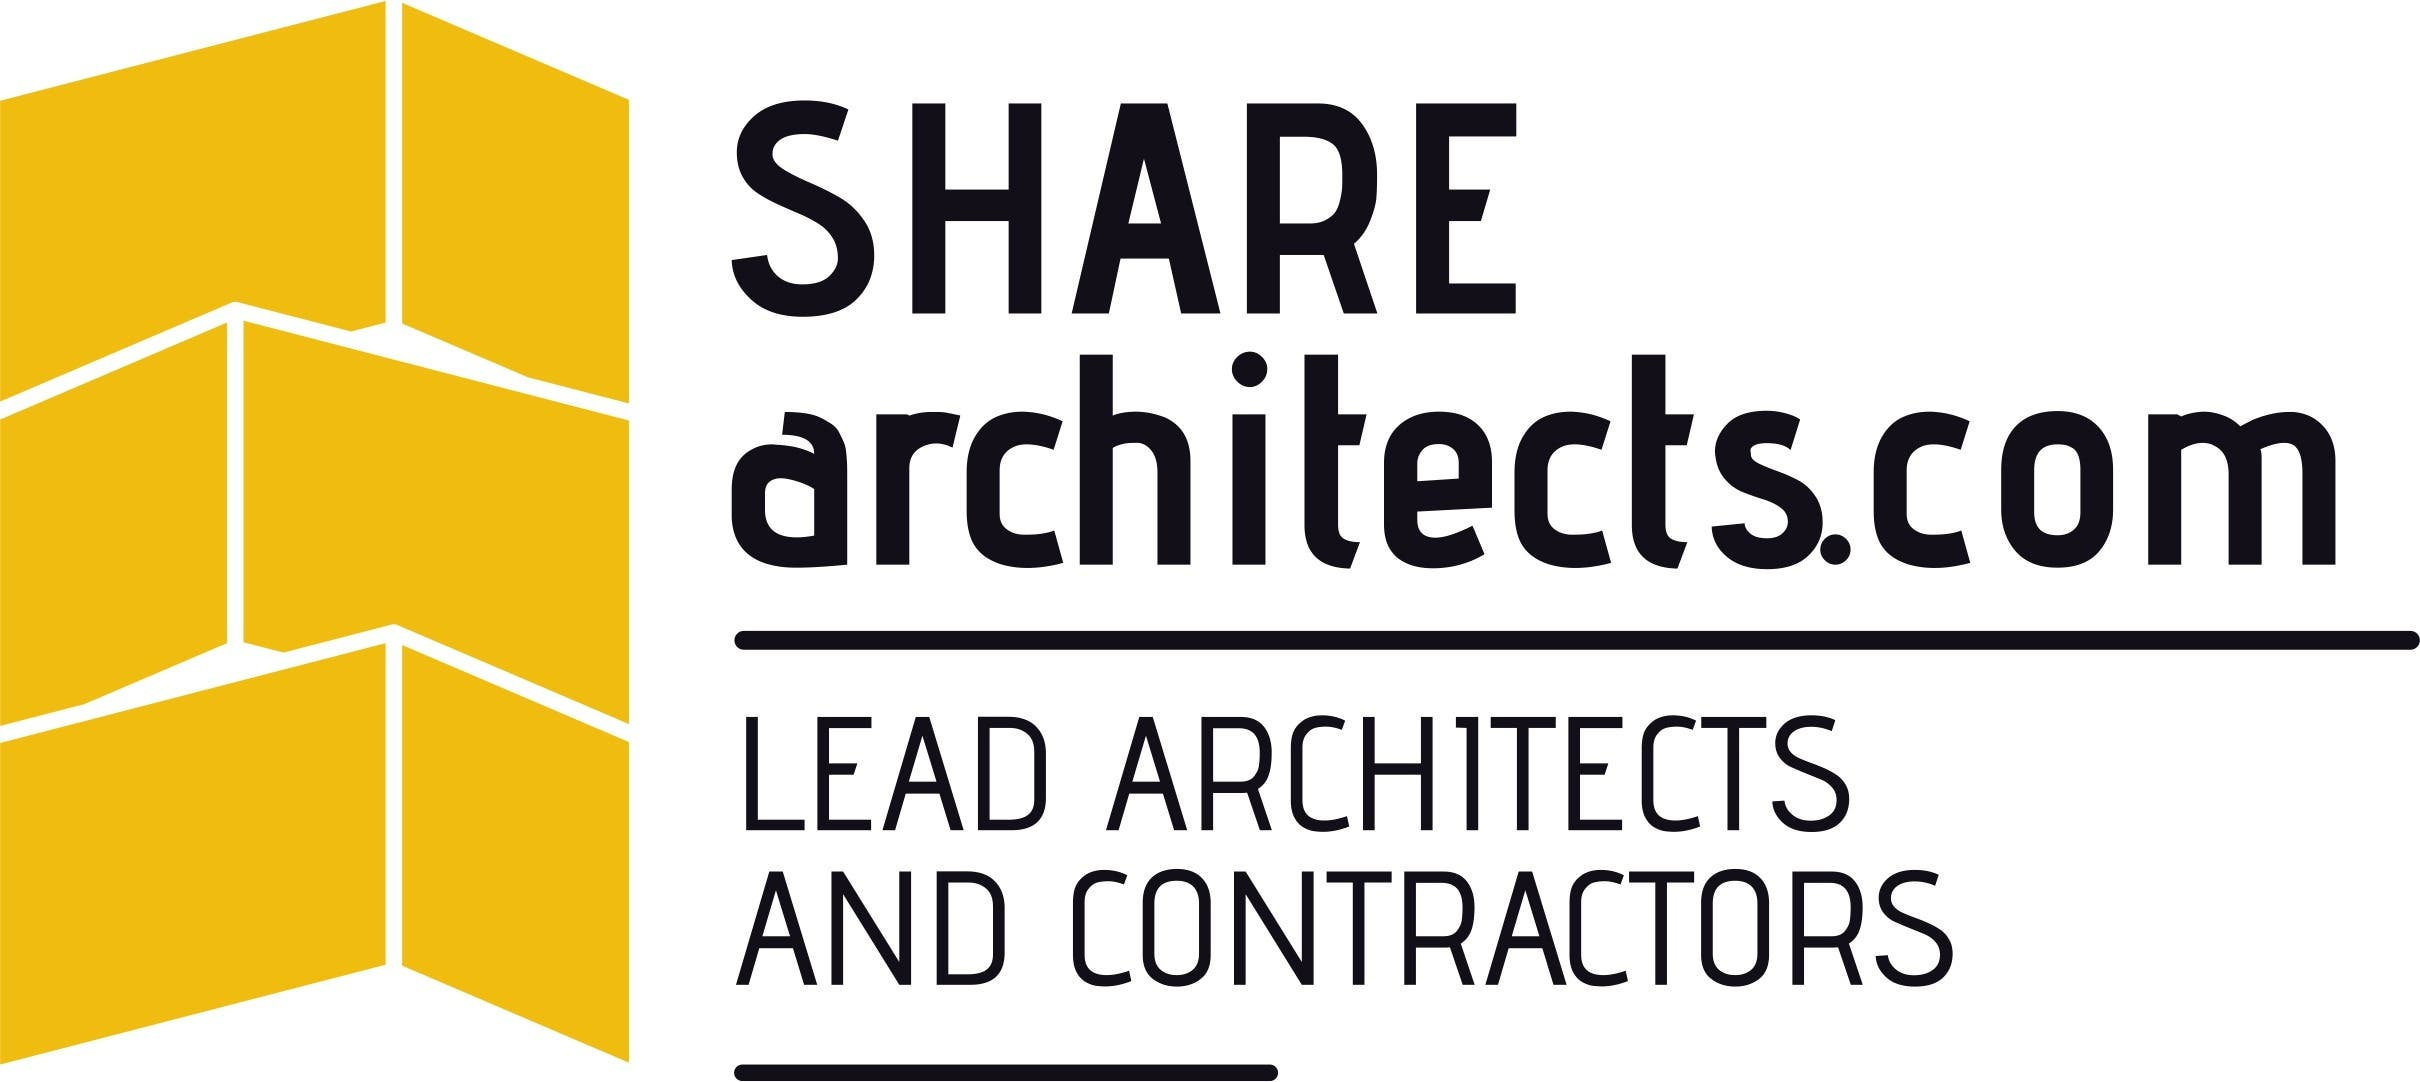 https://share-architects.com/